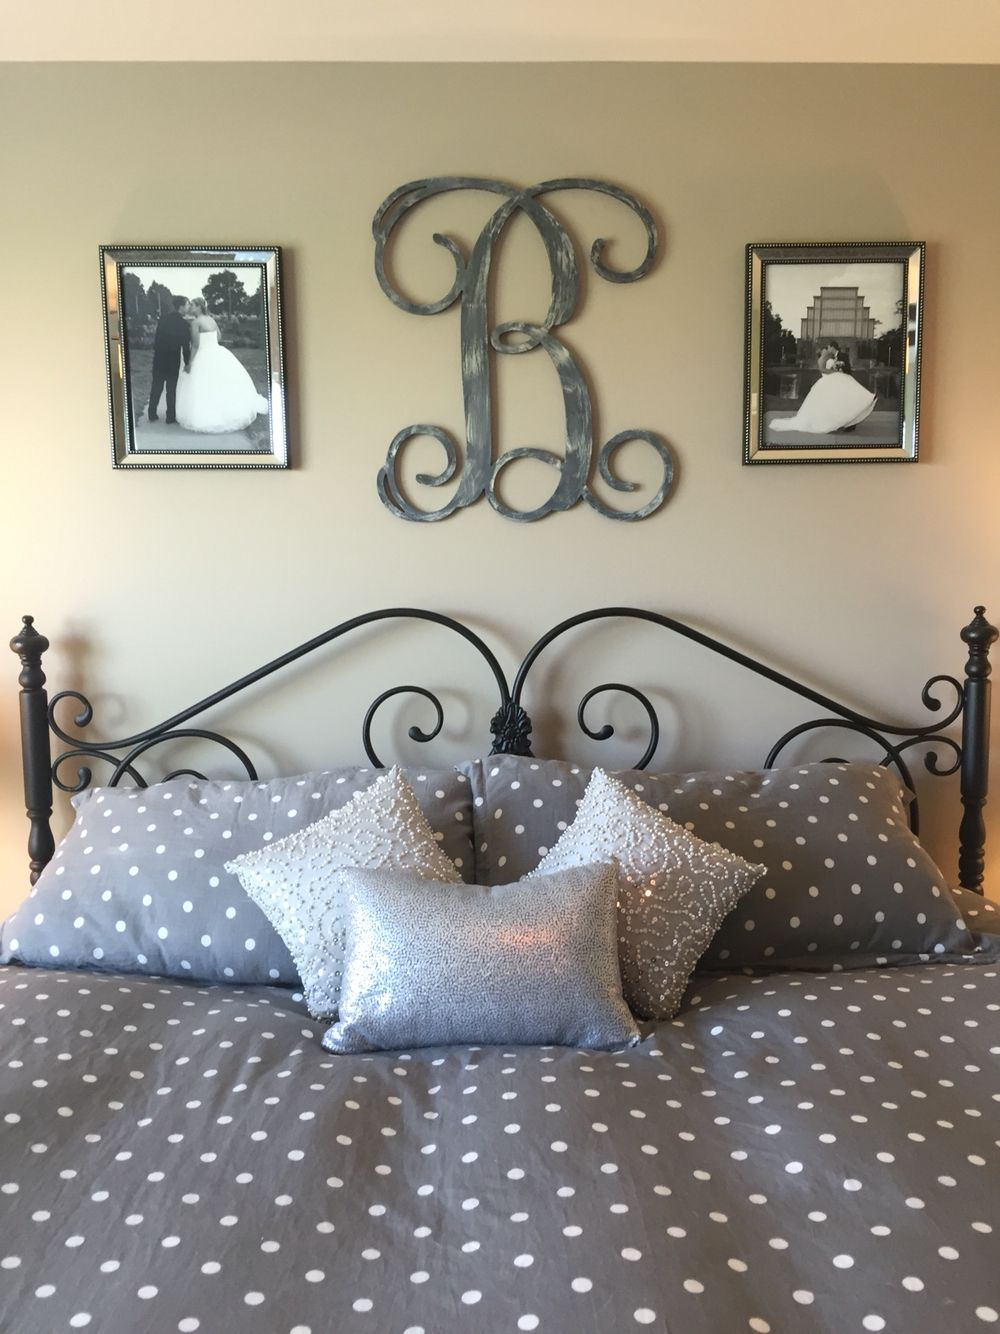 Bedroom wall decorating ideas picture frames - Idea For Above The Bed In Master Bedroom Monogram And Picture Frames Interior Decor Luxury Style Ideas Home Decor Ideas